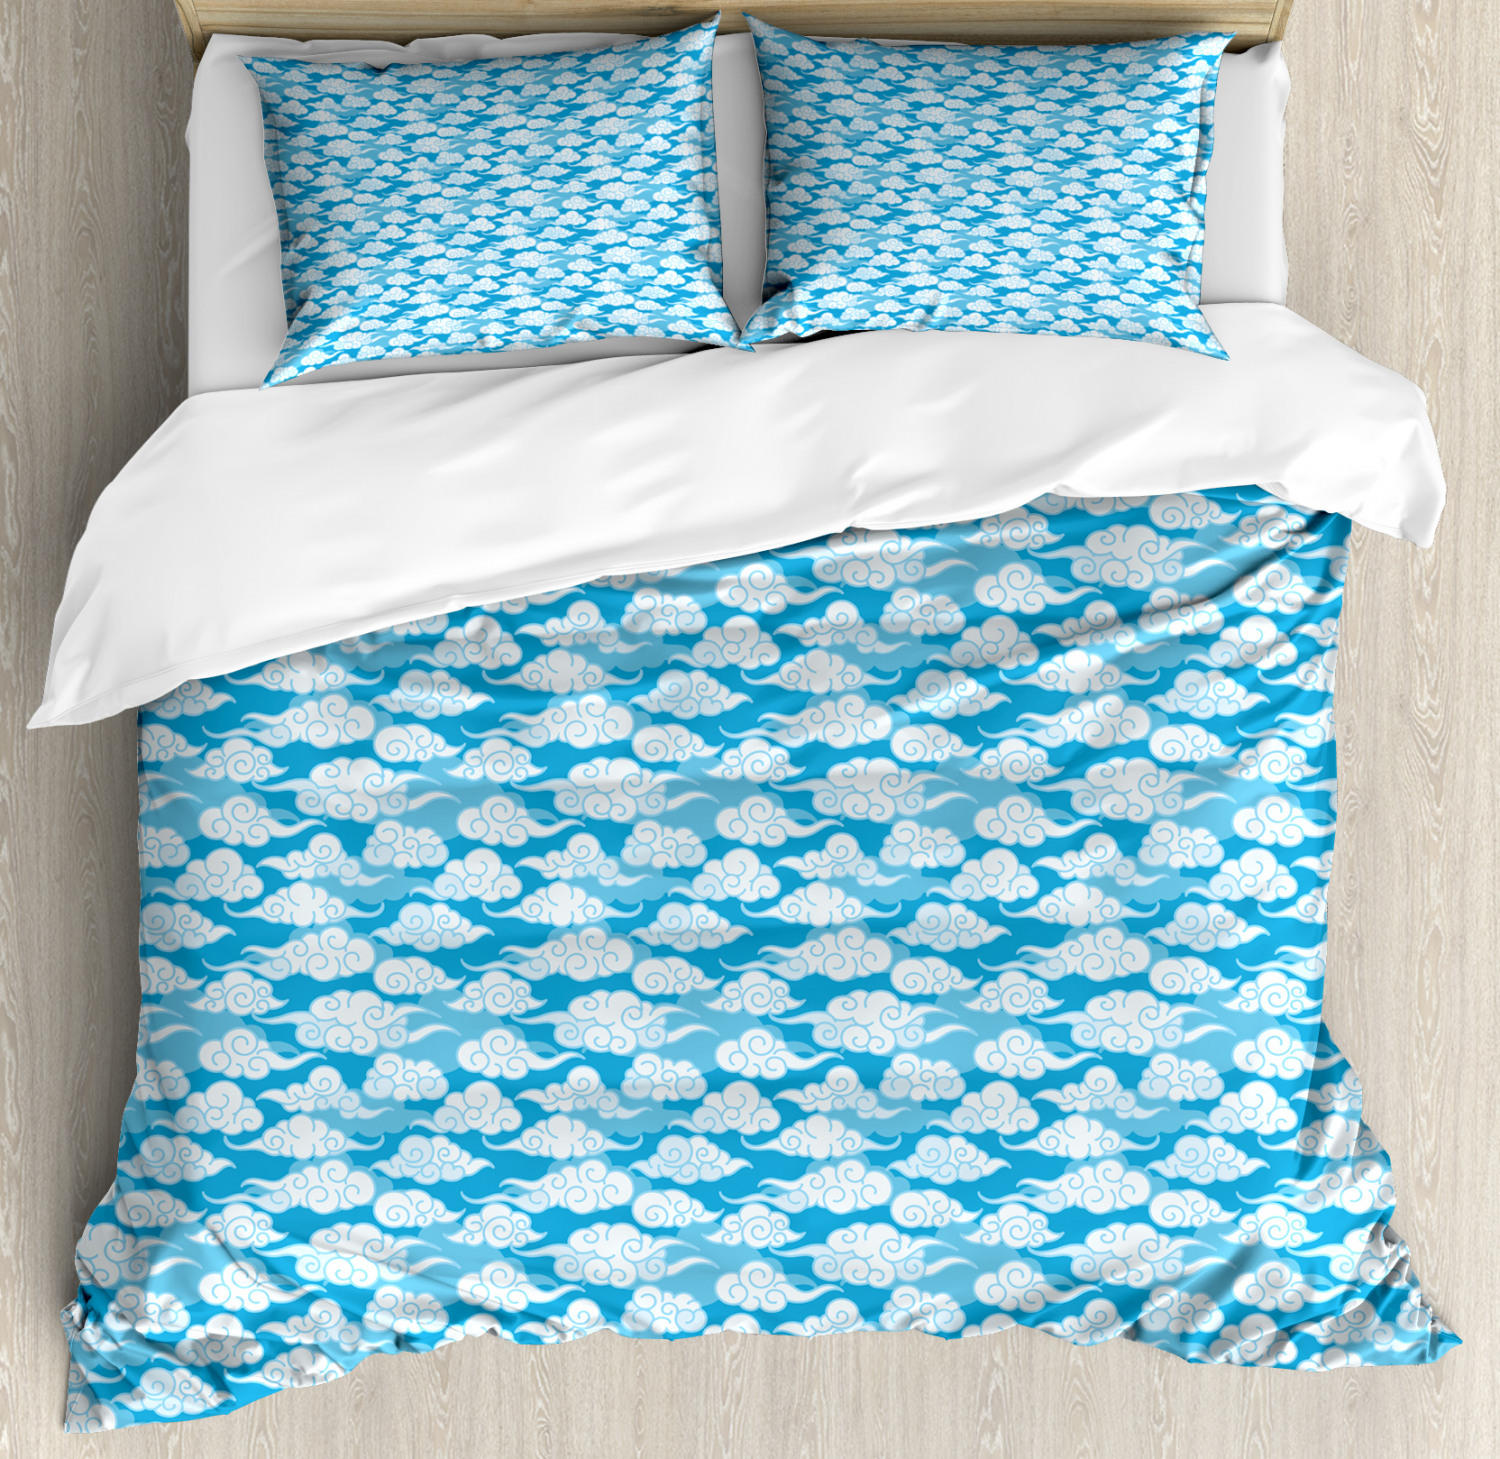 Blue And White Duvet Cover Set Far Eastern Japanese Style Cloud Motifs Swirled Sky Elements Decorative Bedding Set With Pillow Shams Azure Blue Pale Blue White By Ambesonne Walmart Com Walmart Com